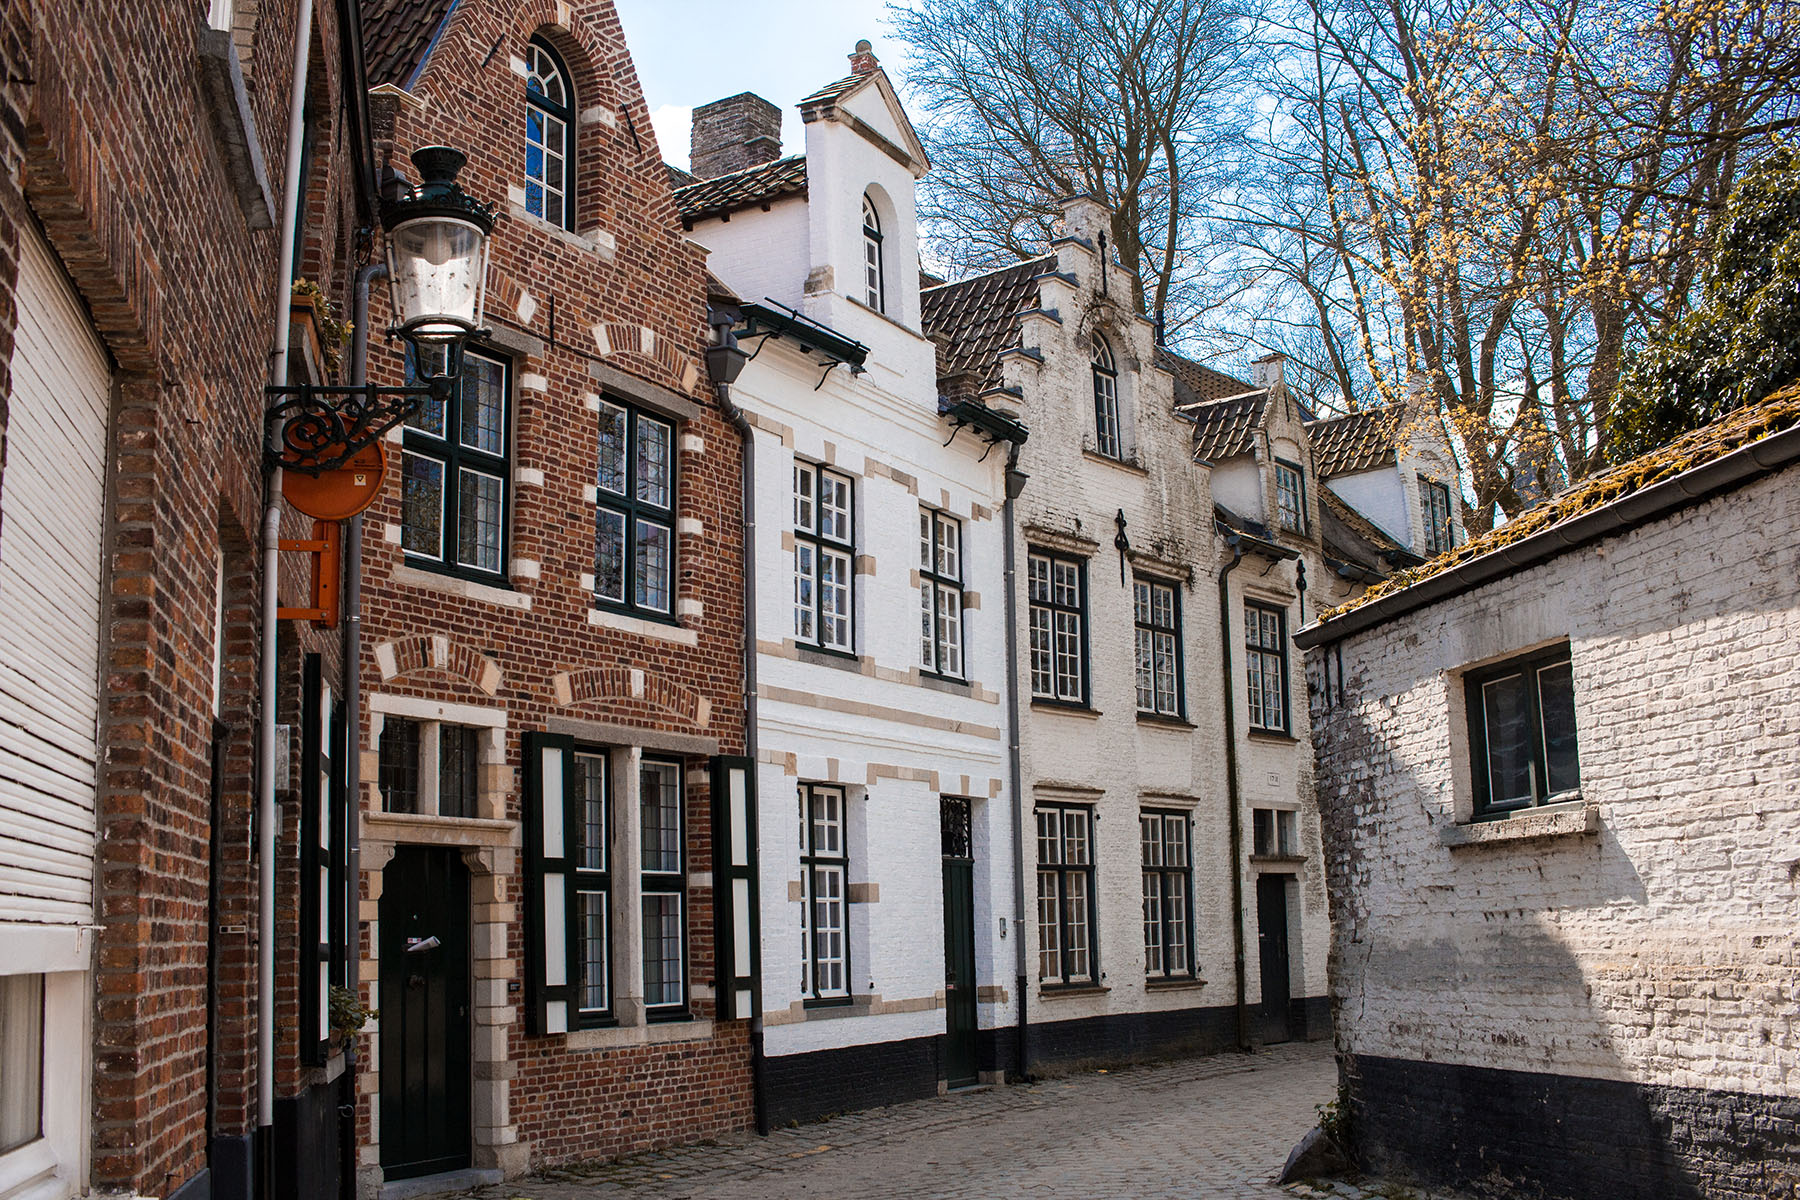 Old houses in Brugge